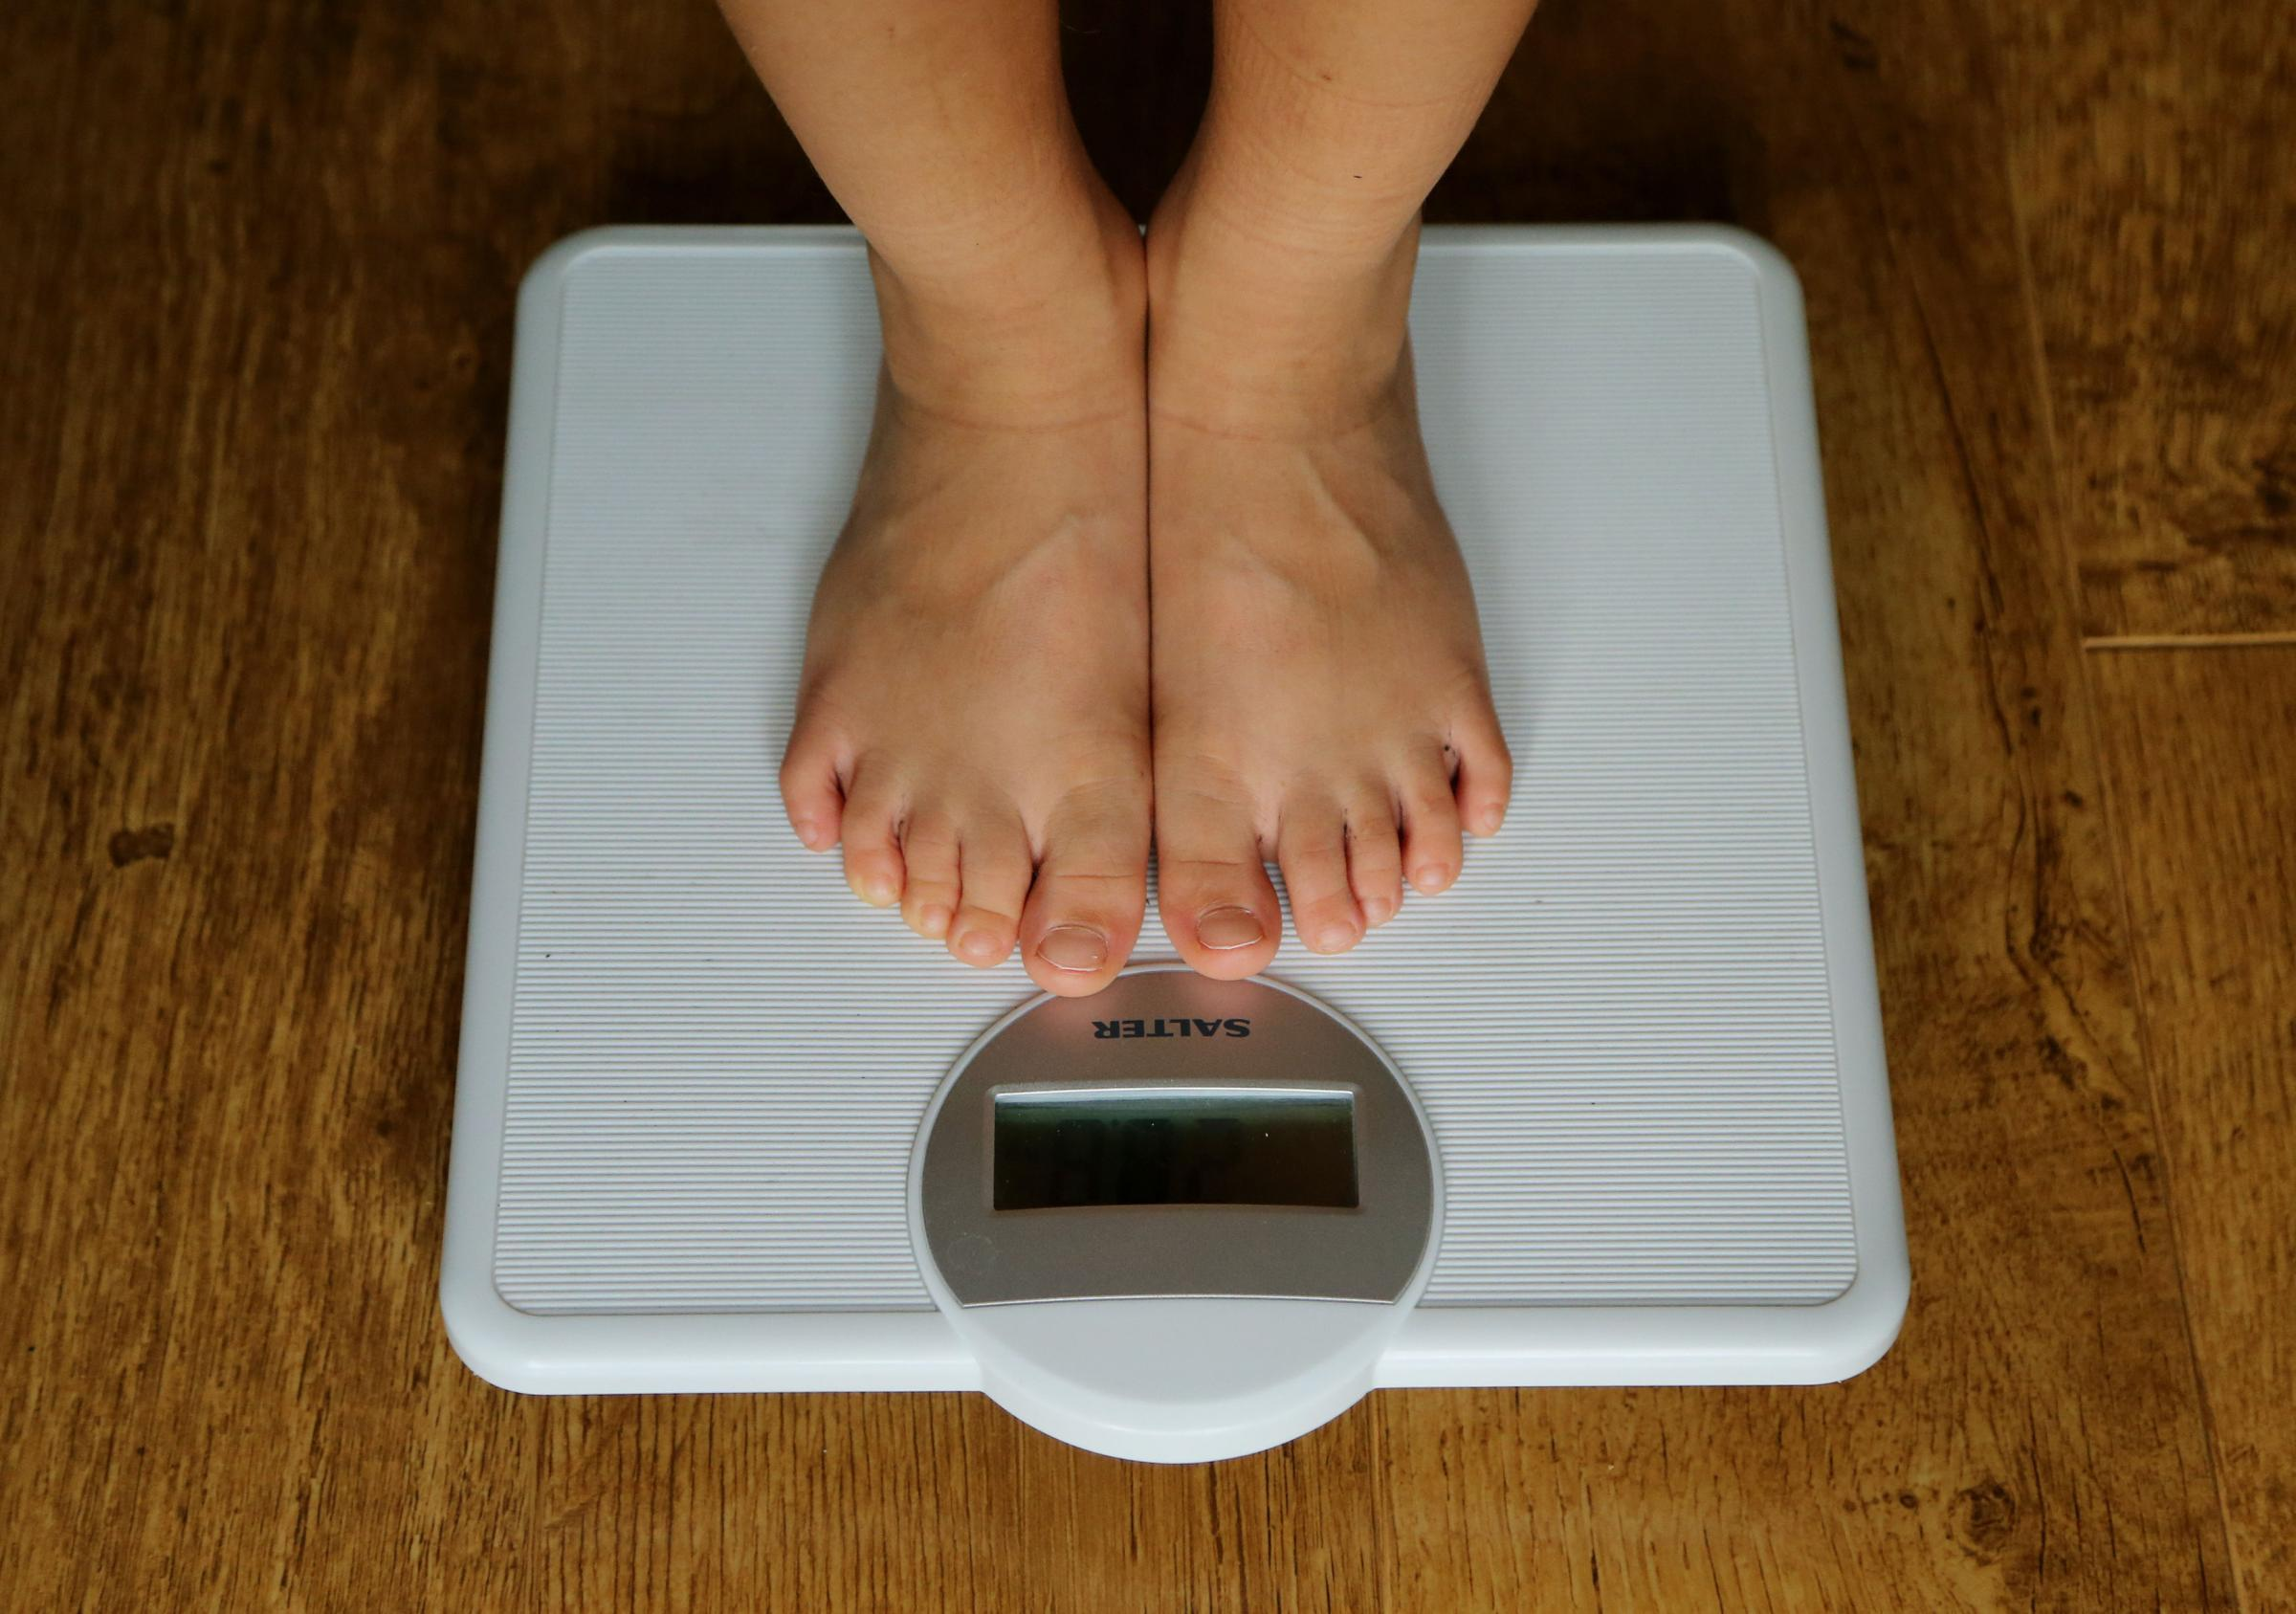 Almost one in five children finishing primary school in Herefordshire are obese.